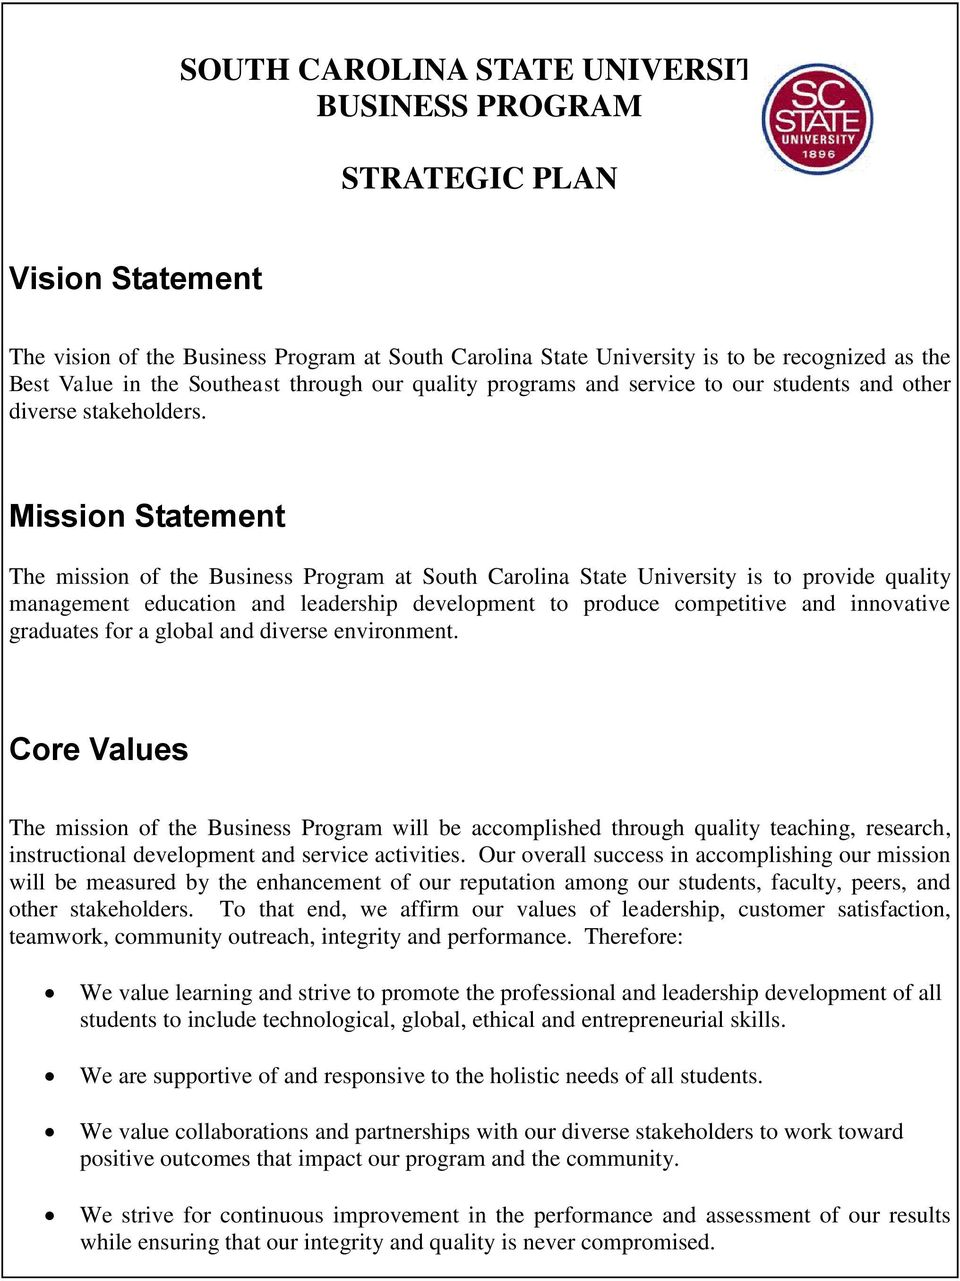 Mission Statement The mission of the Business Program at South Carolina State University is to provide quality management education and leadership development to produce competitive and innovative